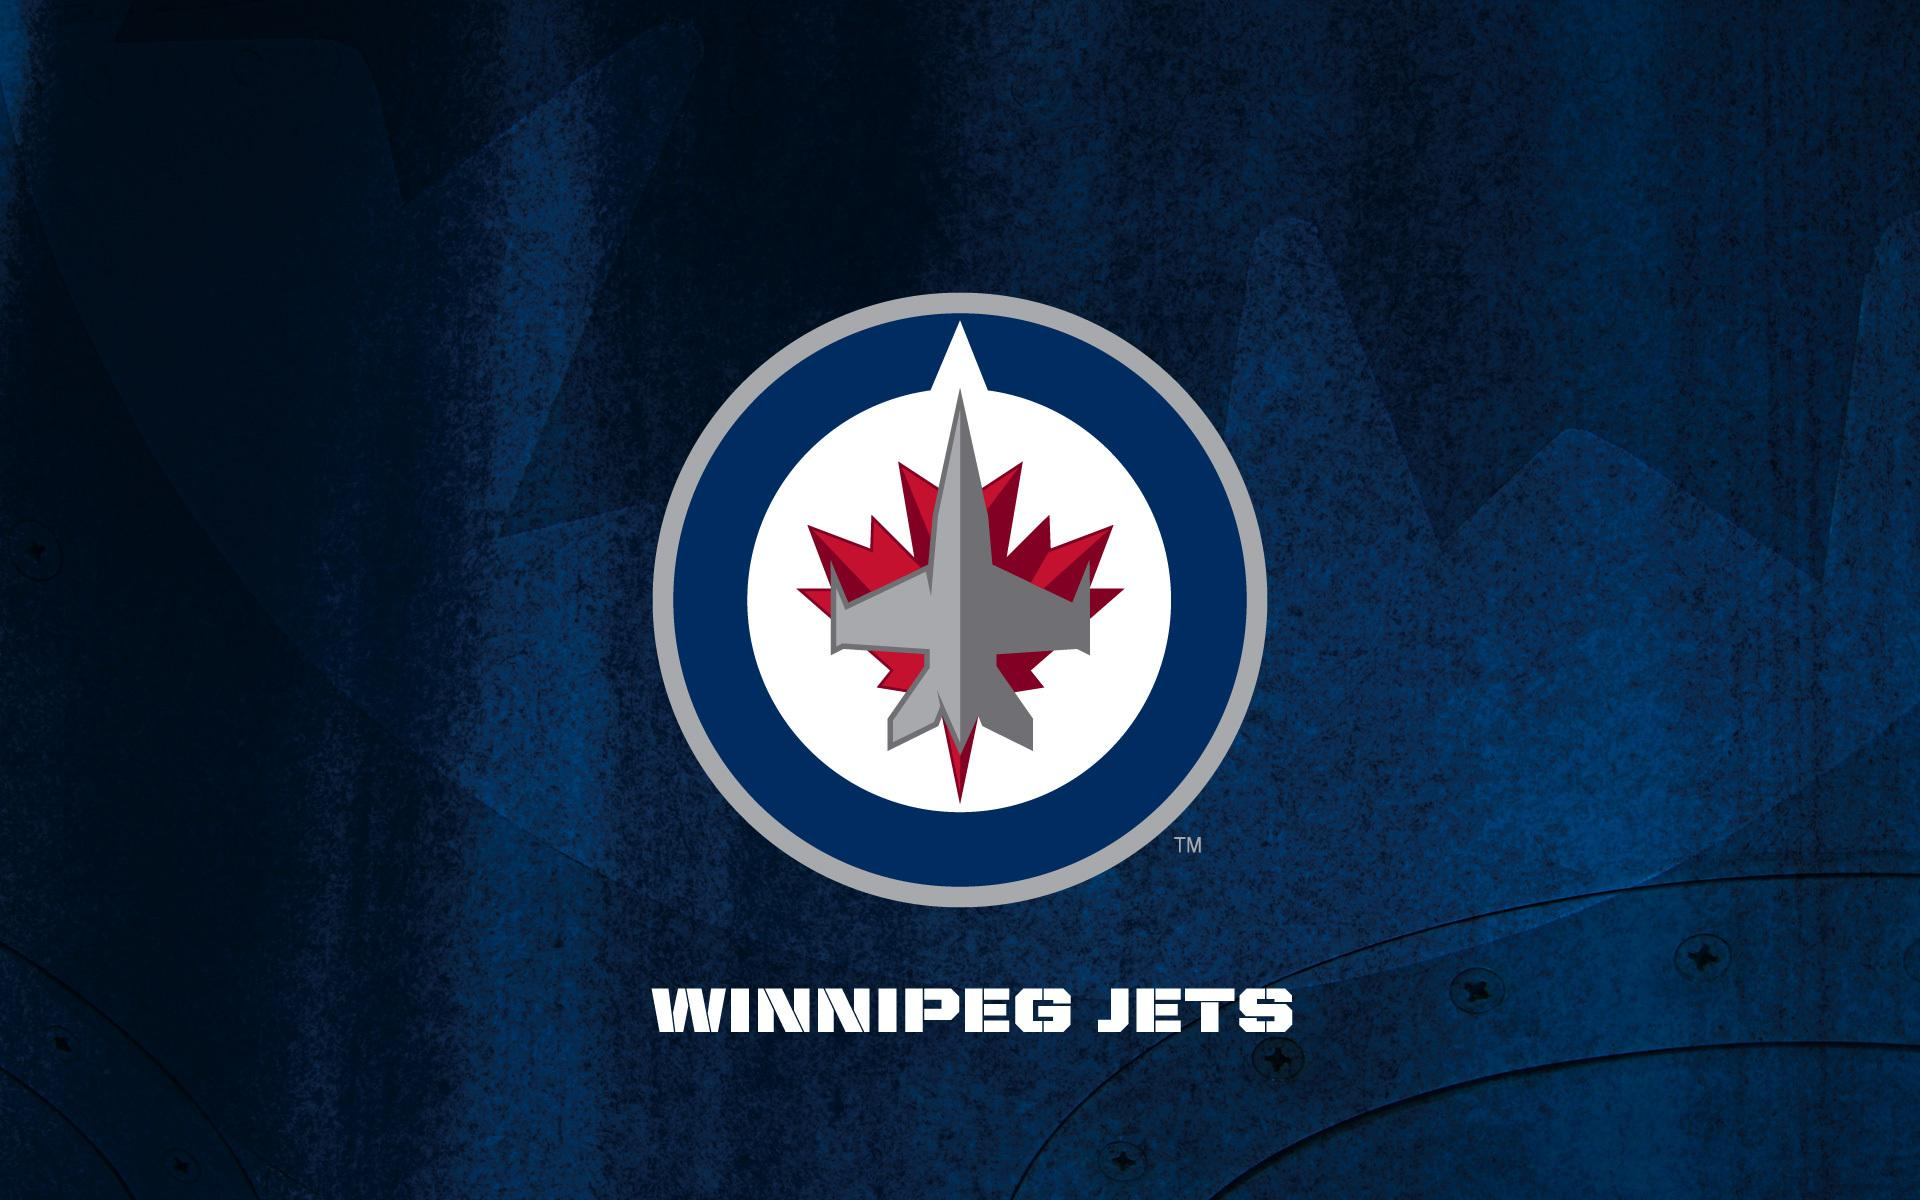 1920x1200 Winnipeg Jets Desktop Wallpaper Background Desktop Wallpaper 1920x1200